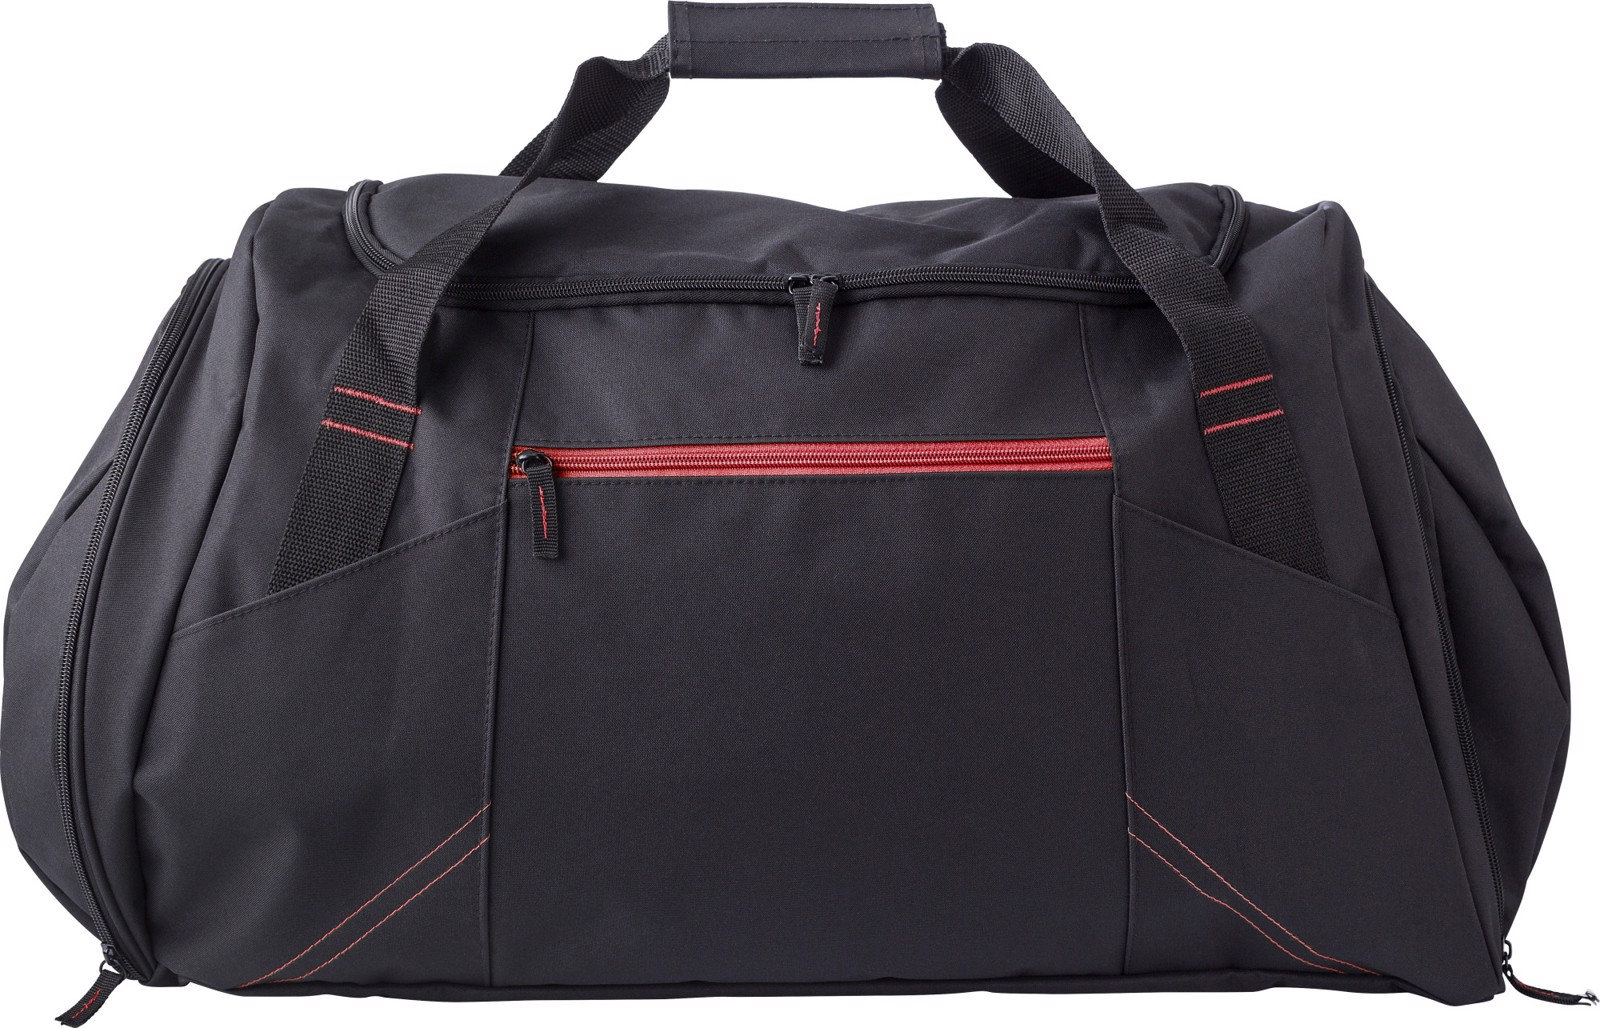 Polyester (300D) sports bag - Red